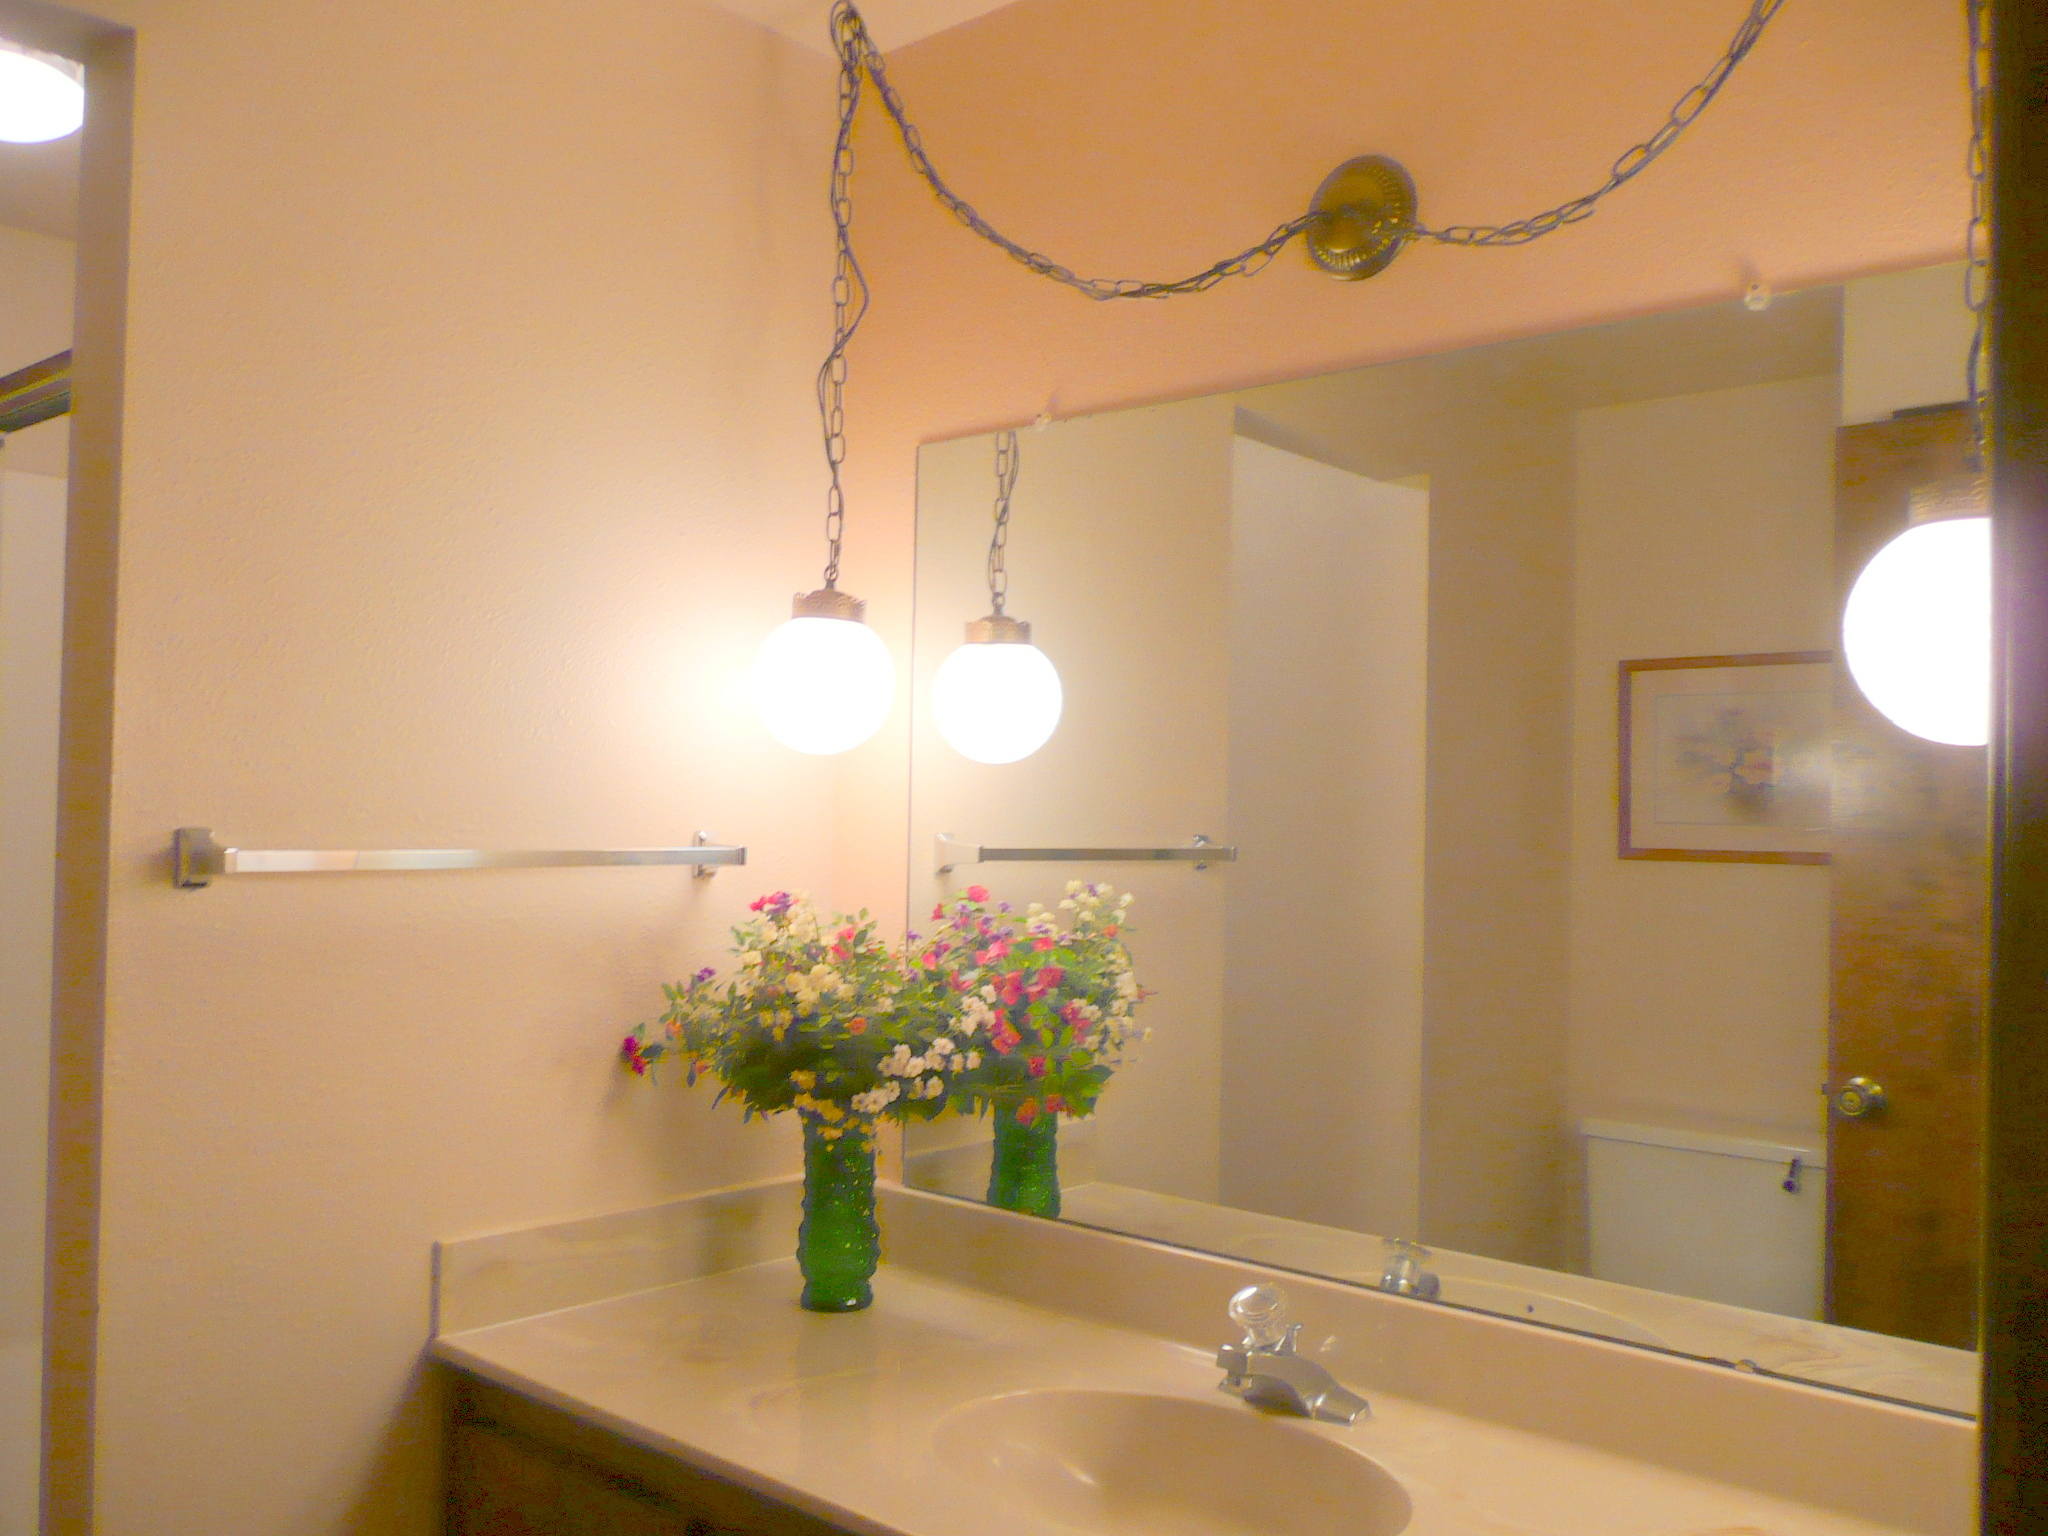 Changing Bathroom Vanity Light Fixture updating bathroom vanity lighting – tips for home sellers | home